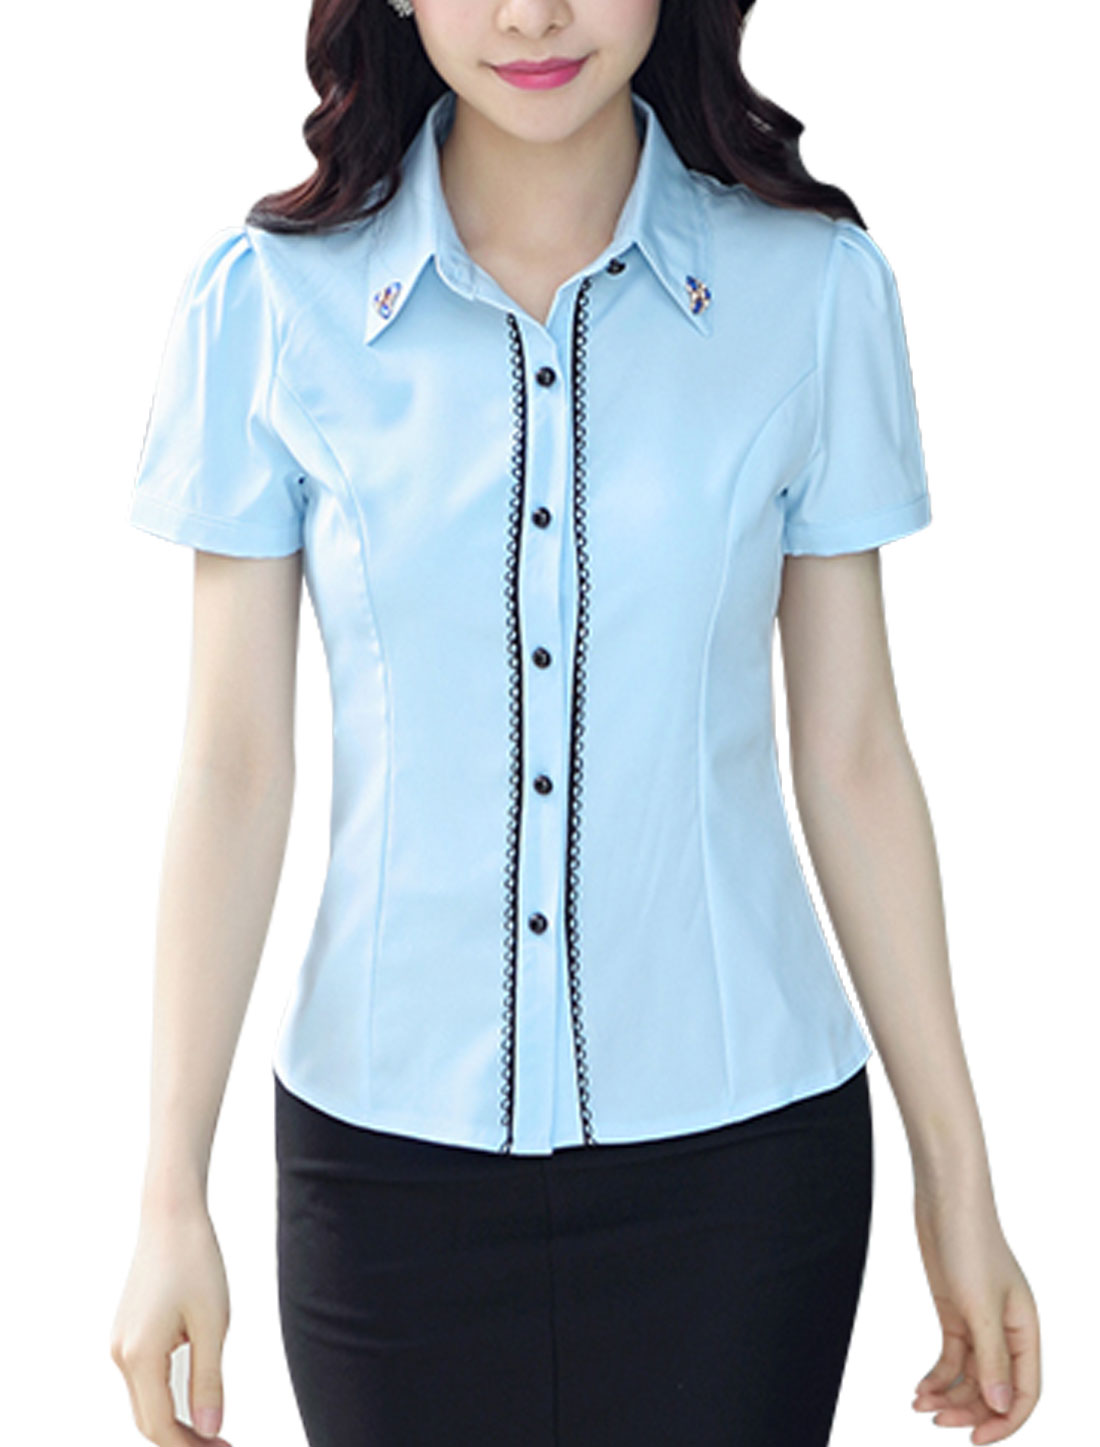 Ladies Short Sleeves Scalloped Trim Button Down Shirts Sky Blue M